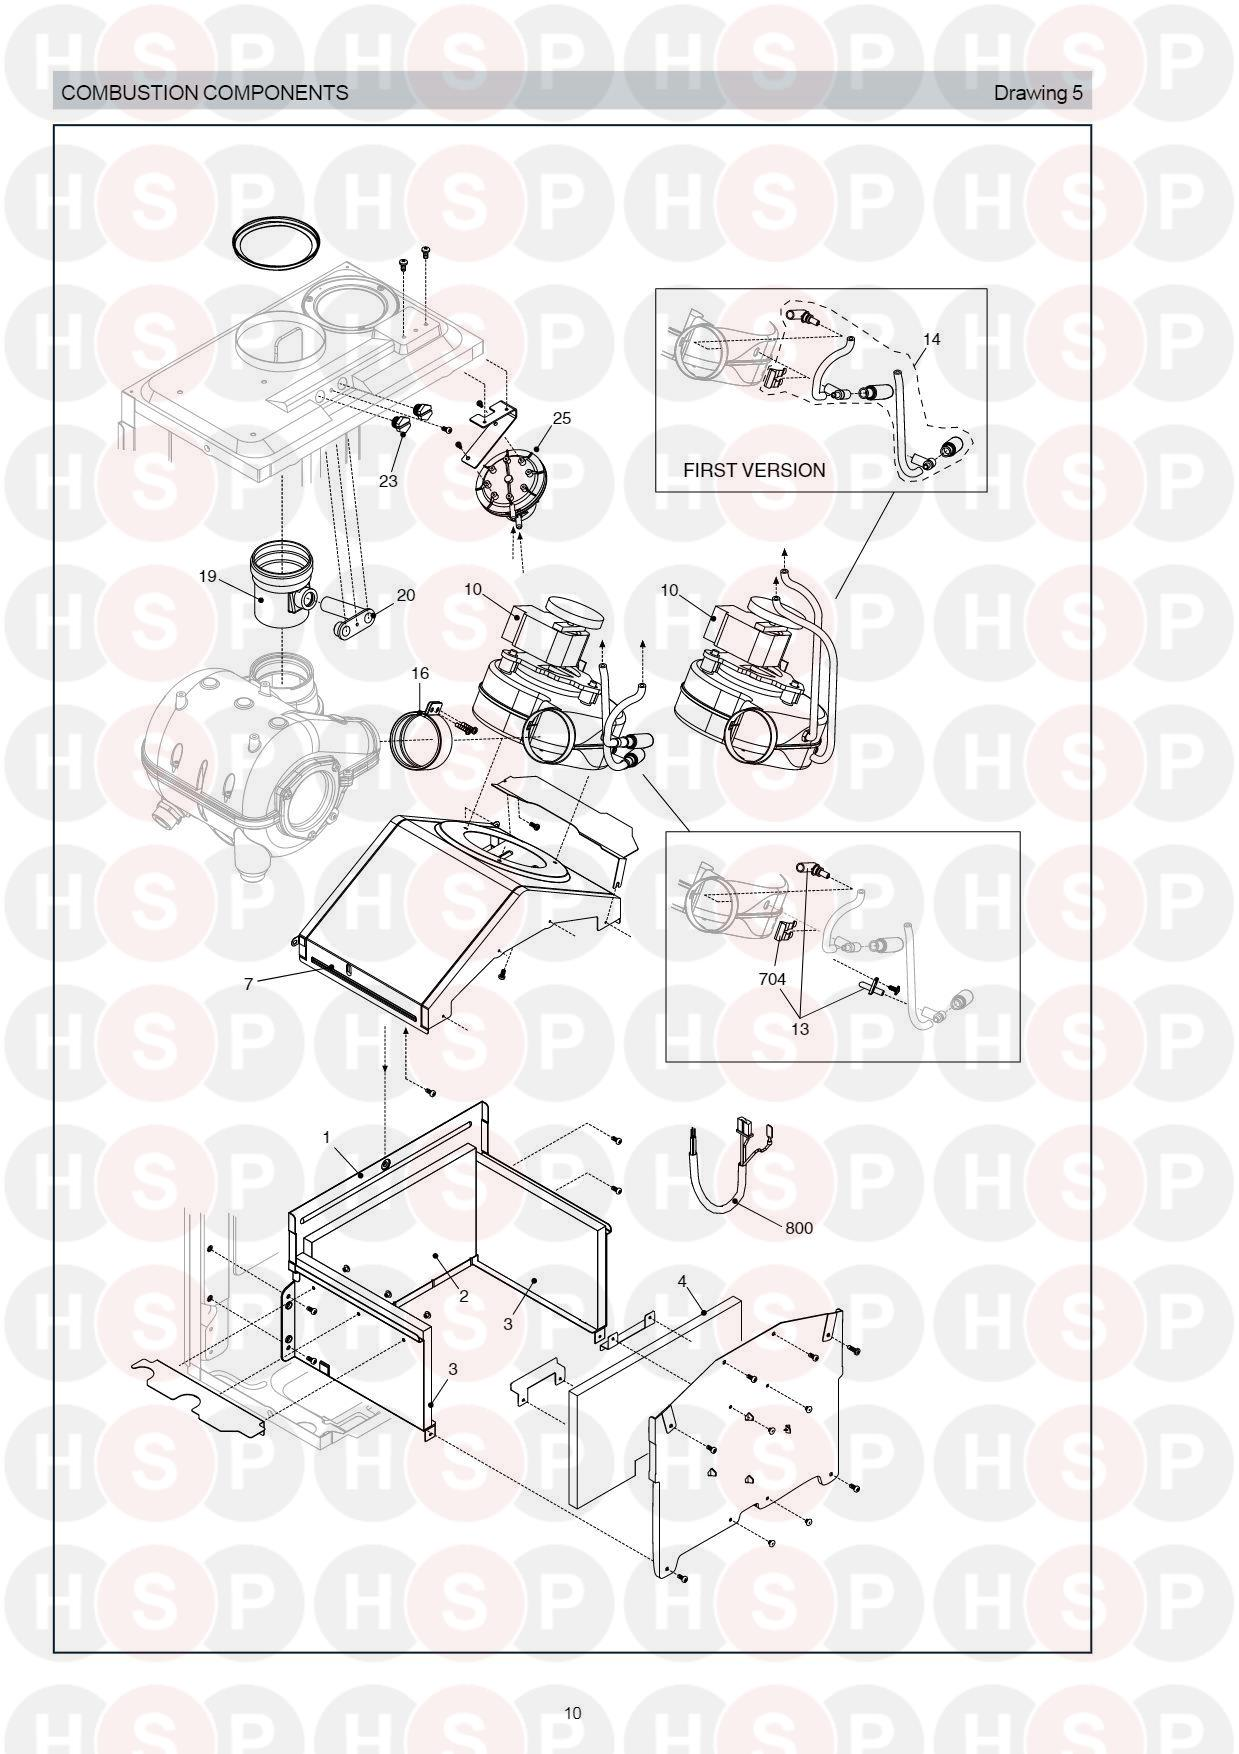 Combustion Components diagram for Vokera Compact 25 HE Rev 6 (11/2010) NG